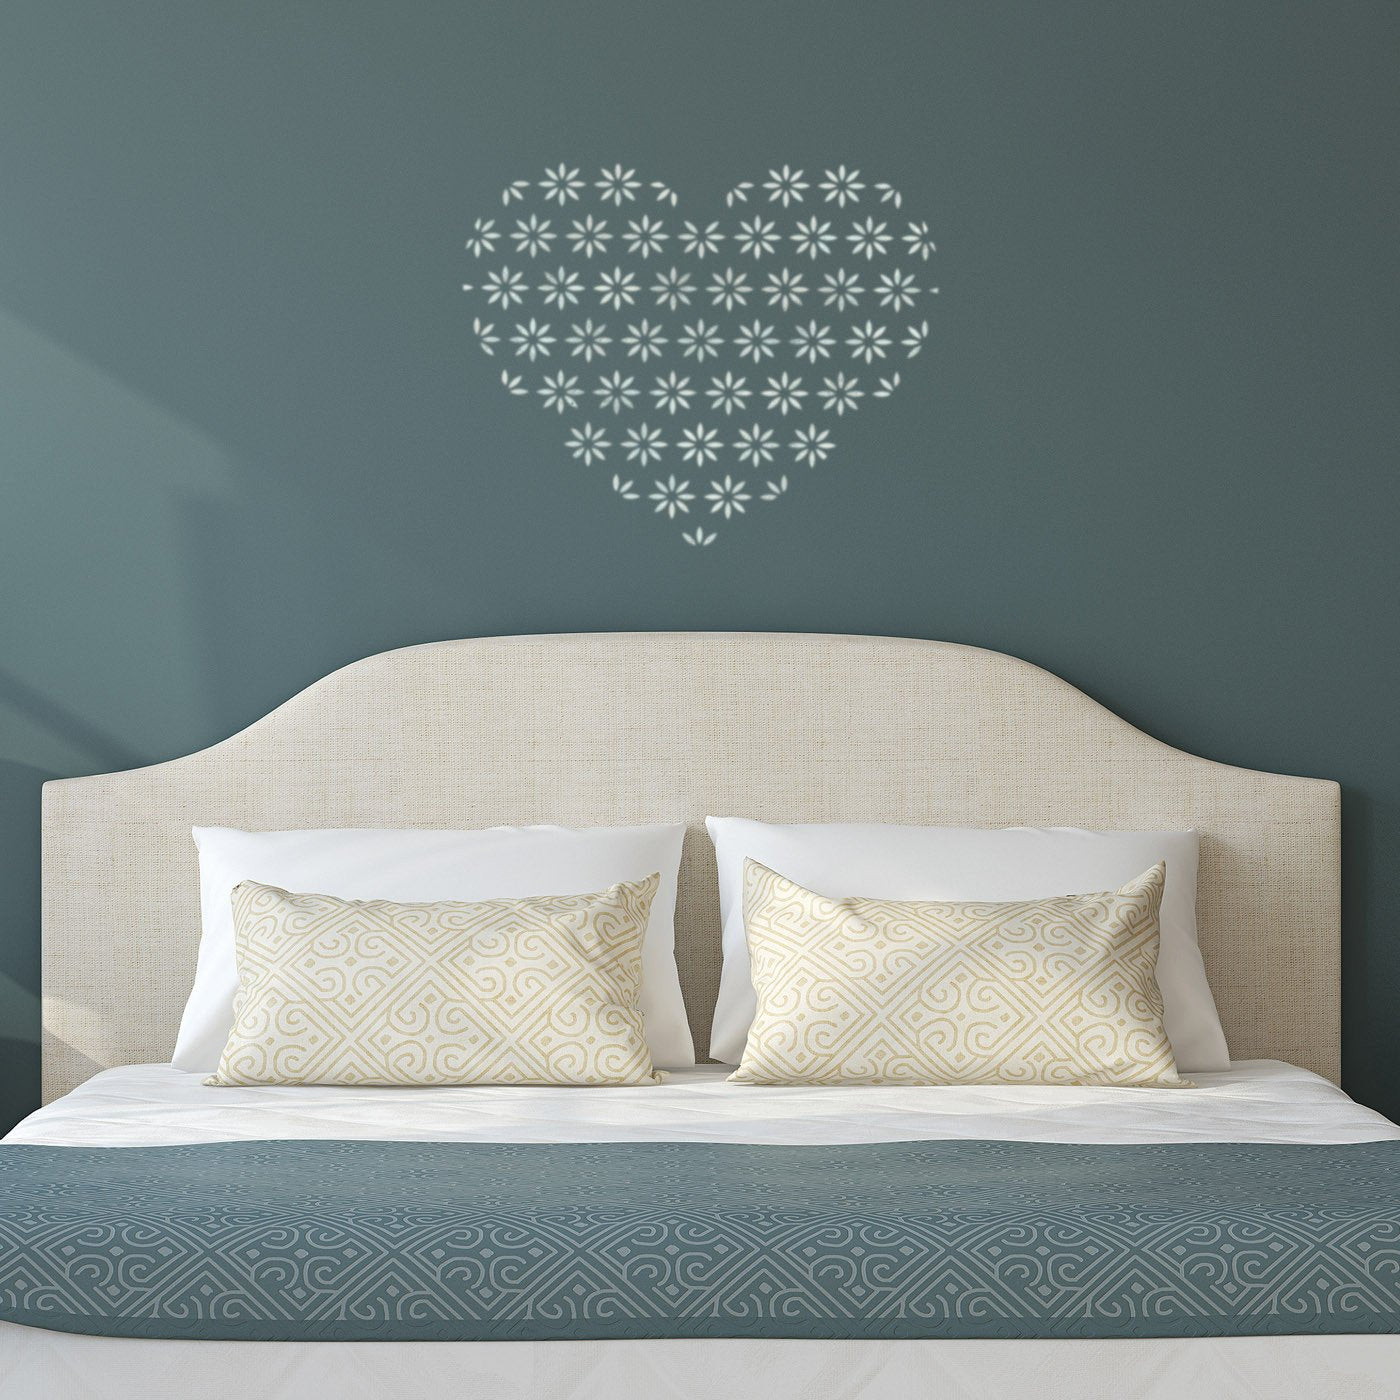 CraftStar Flower Pattern Heart Stencil on Bedroom Wall